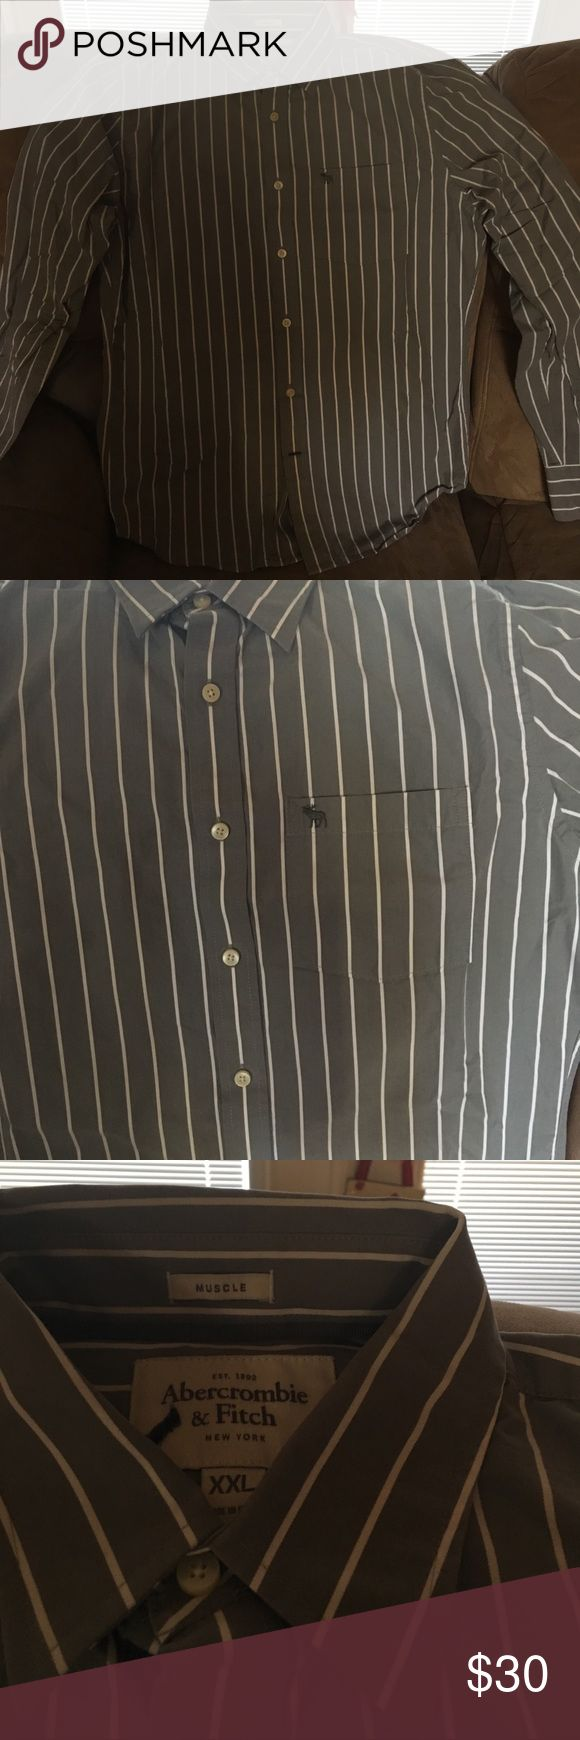 Abercrombie & Fitch Muscle shirt XXL This is a gray with white pin stripe dress shirt. Barely worn. Like new condition. No flaws whatsoever. XXL size Abercrombie & Fitch Shirts Dress Shirts